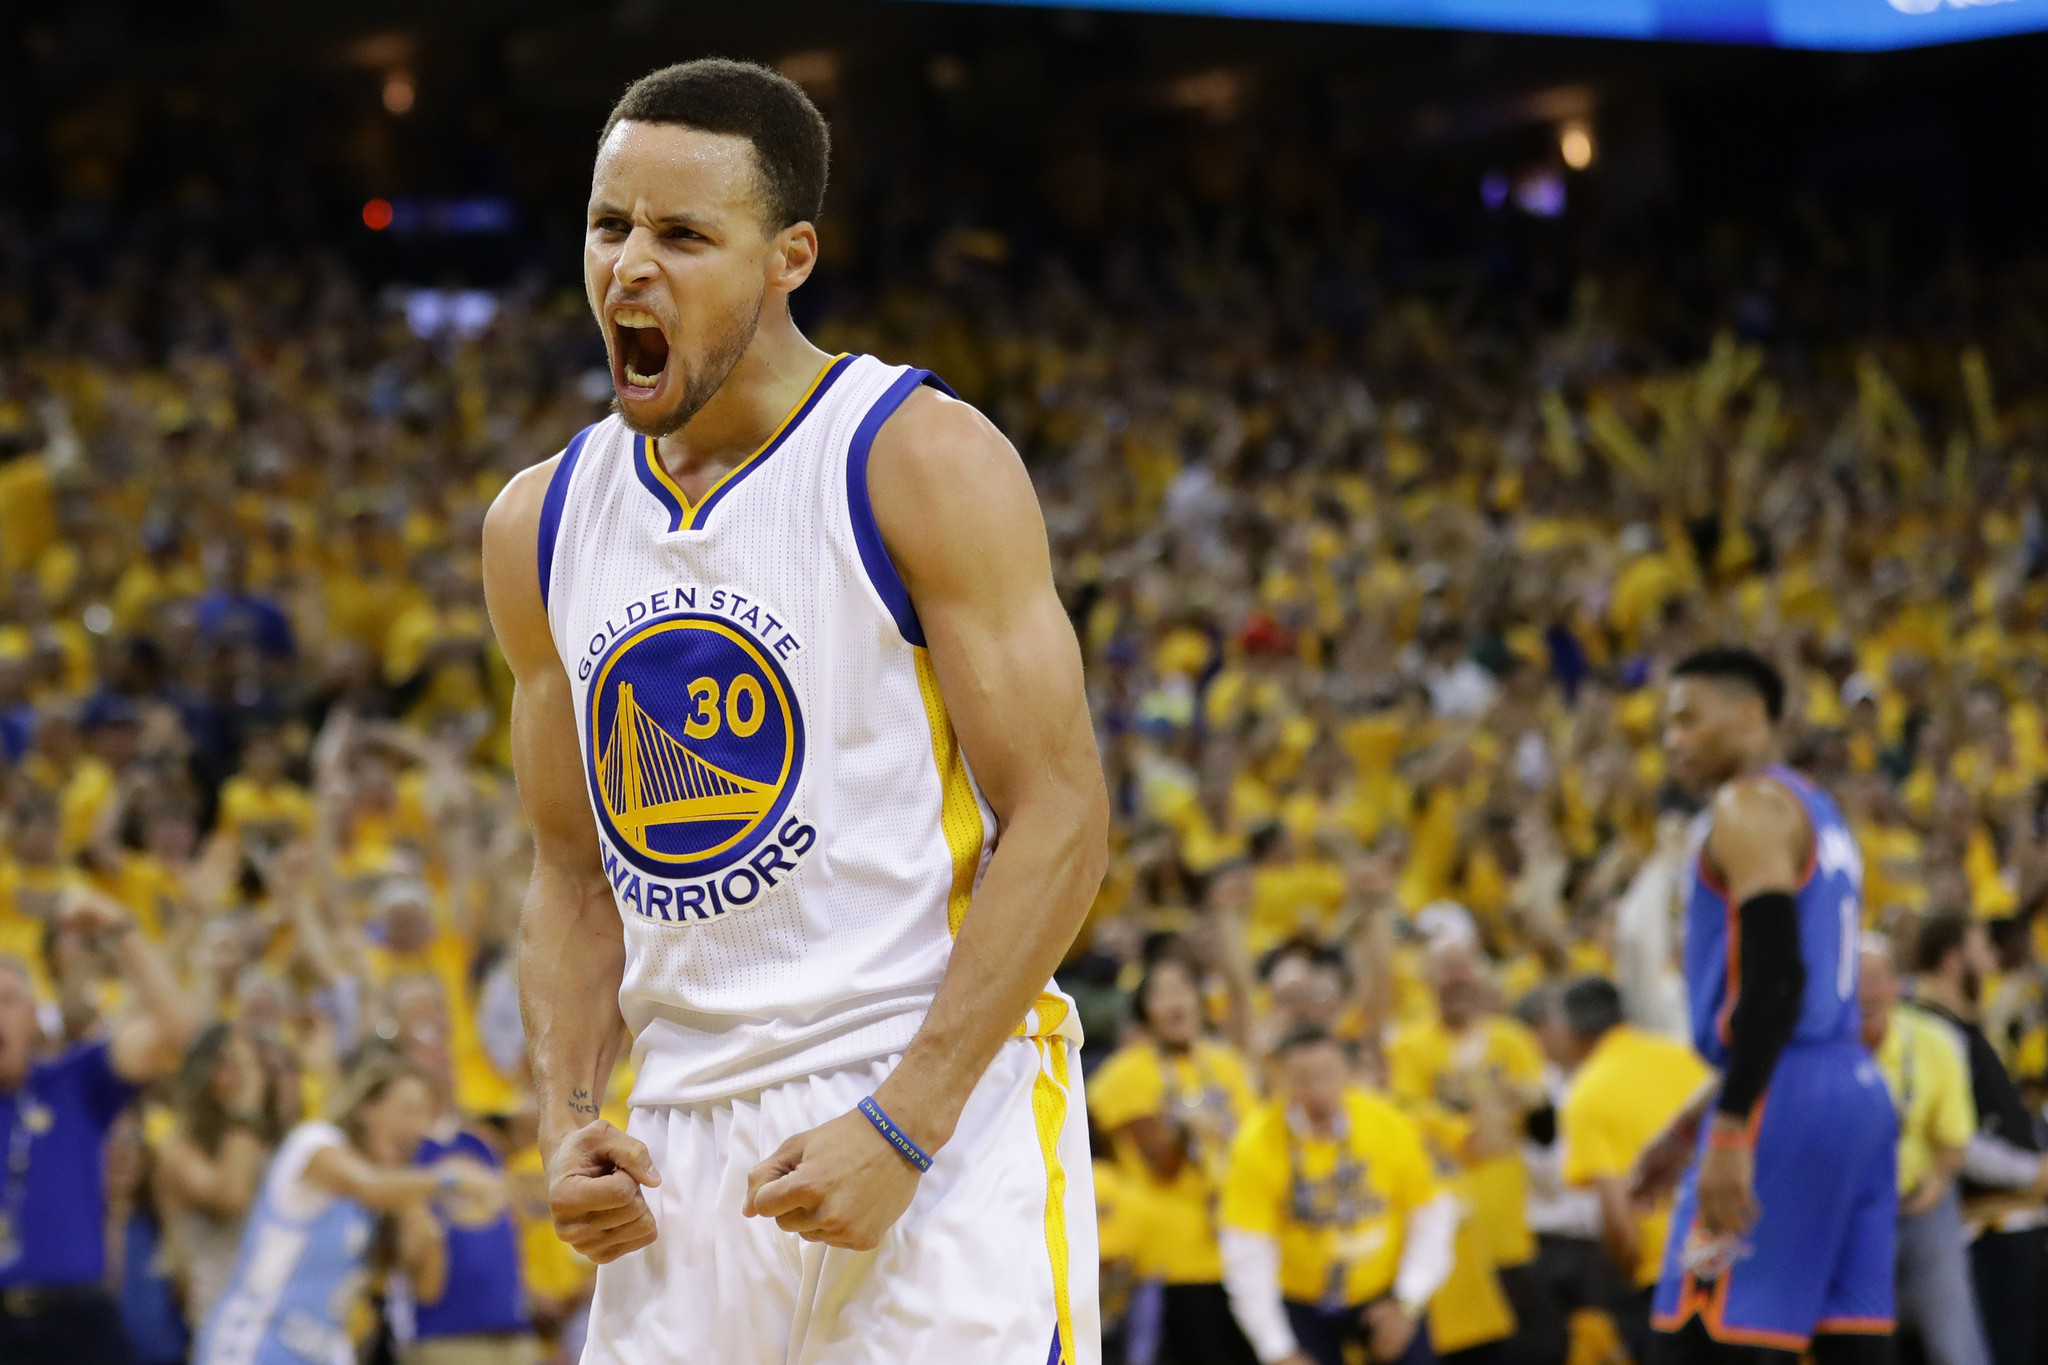 Cavs' challenge in NBA Finals rematch: How to slow, not stop, Stephen Curry - Chicago Tribune